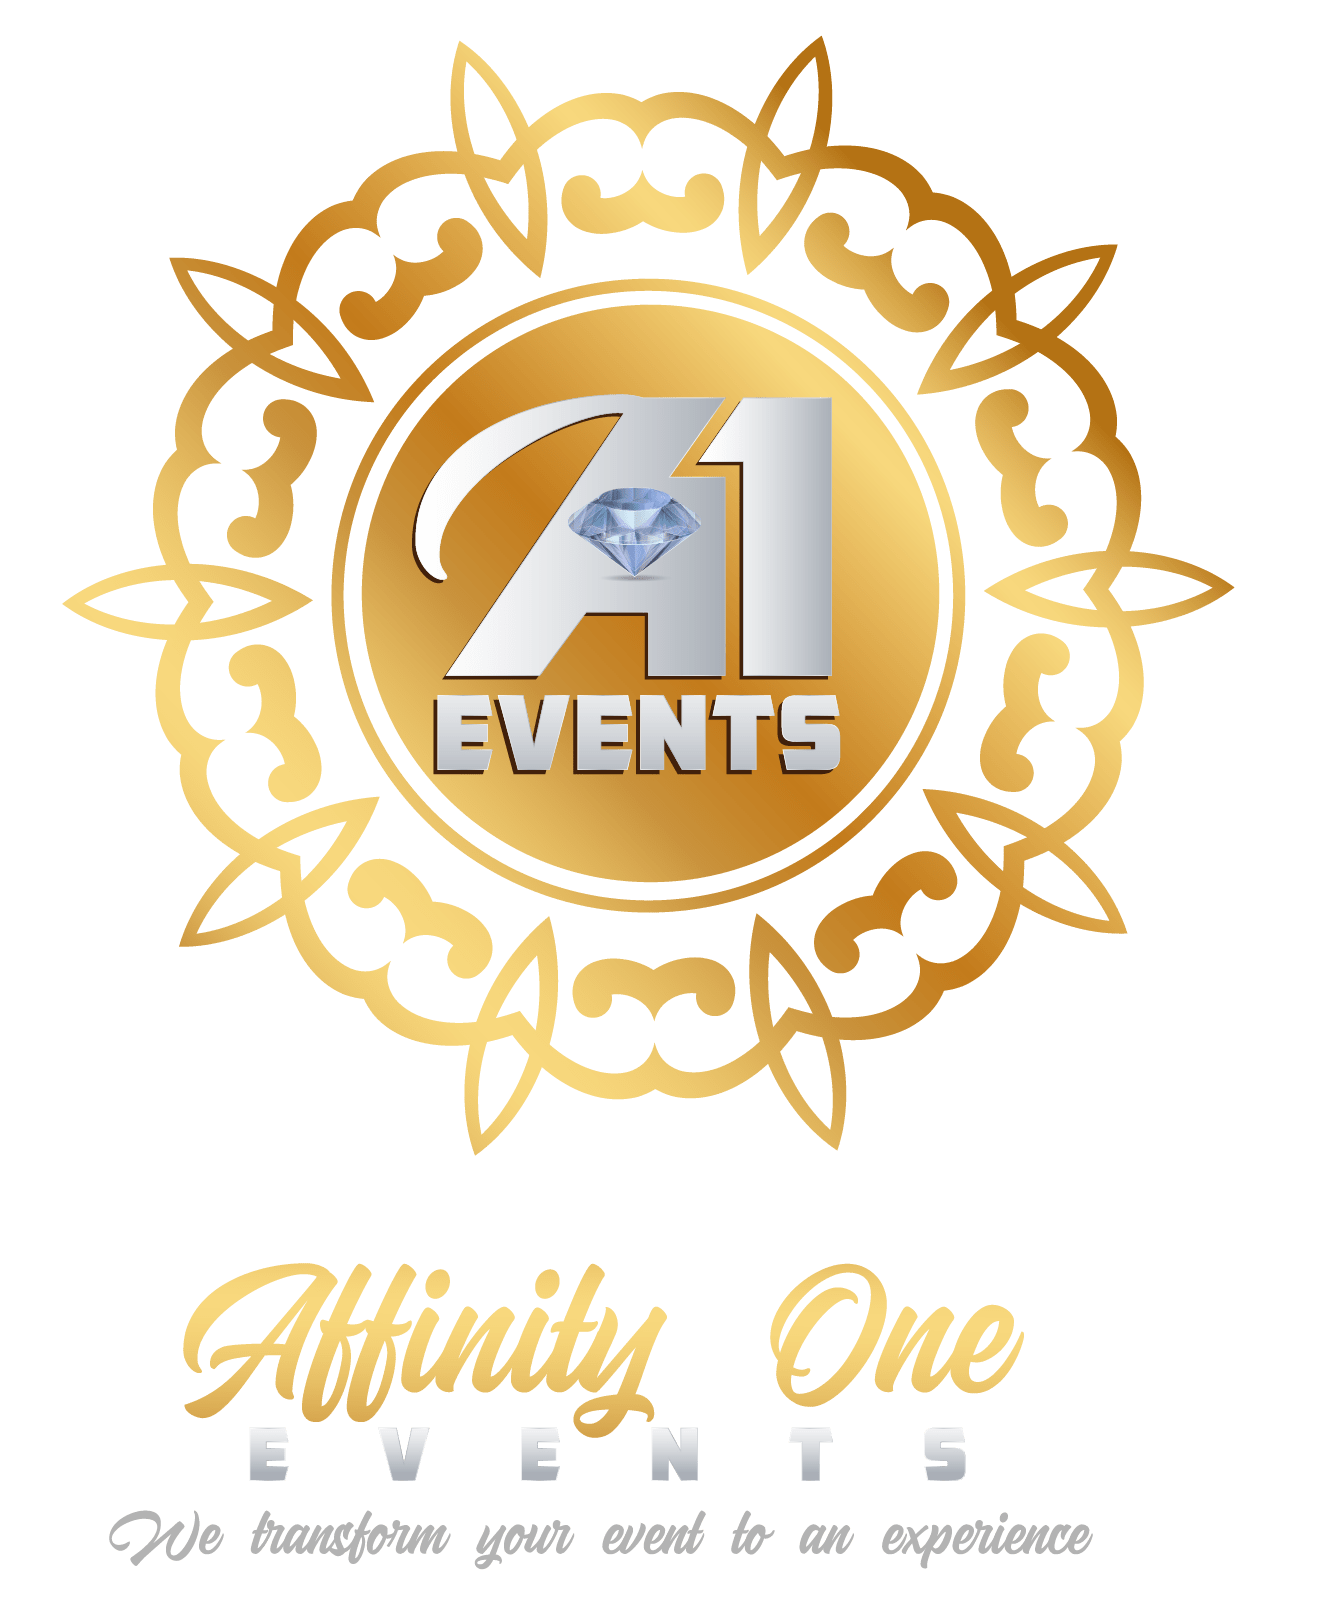 Affinity One Events